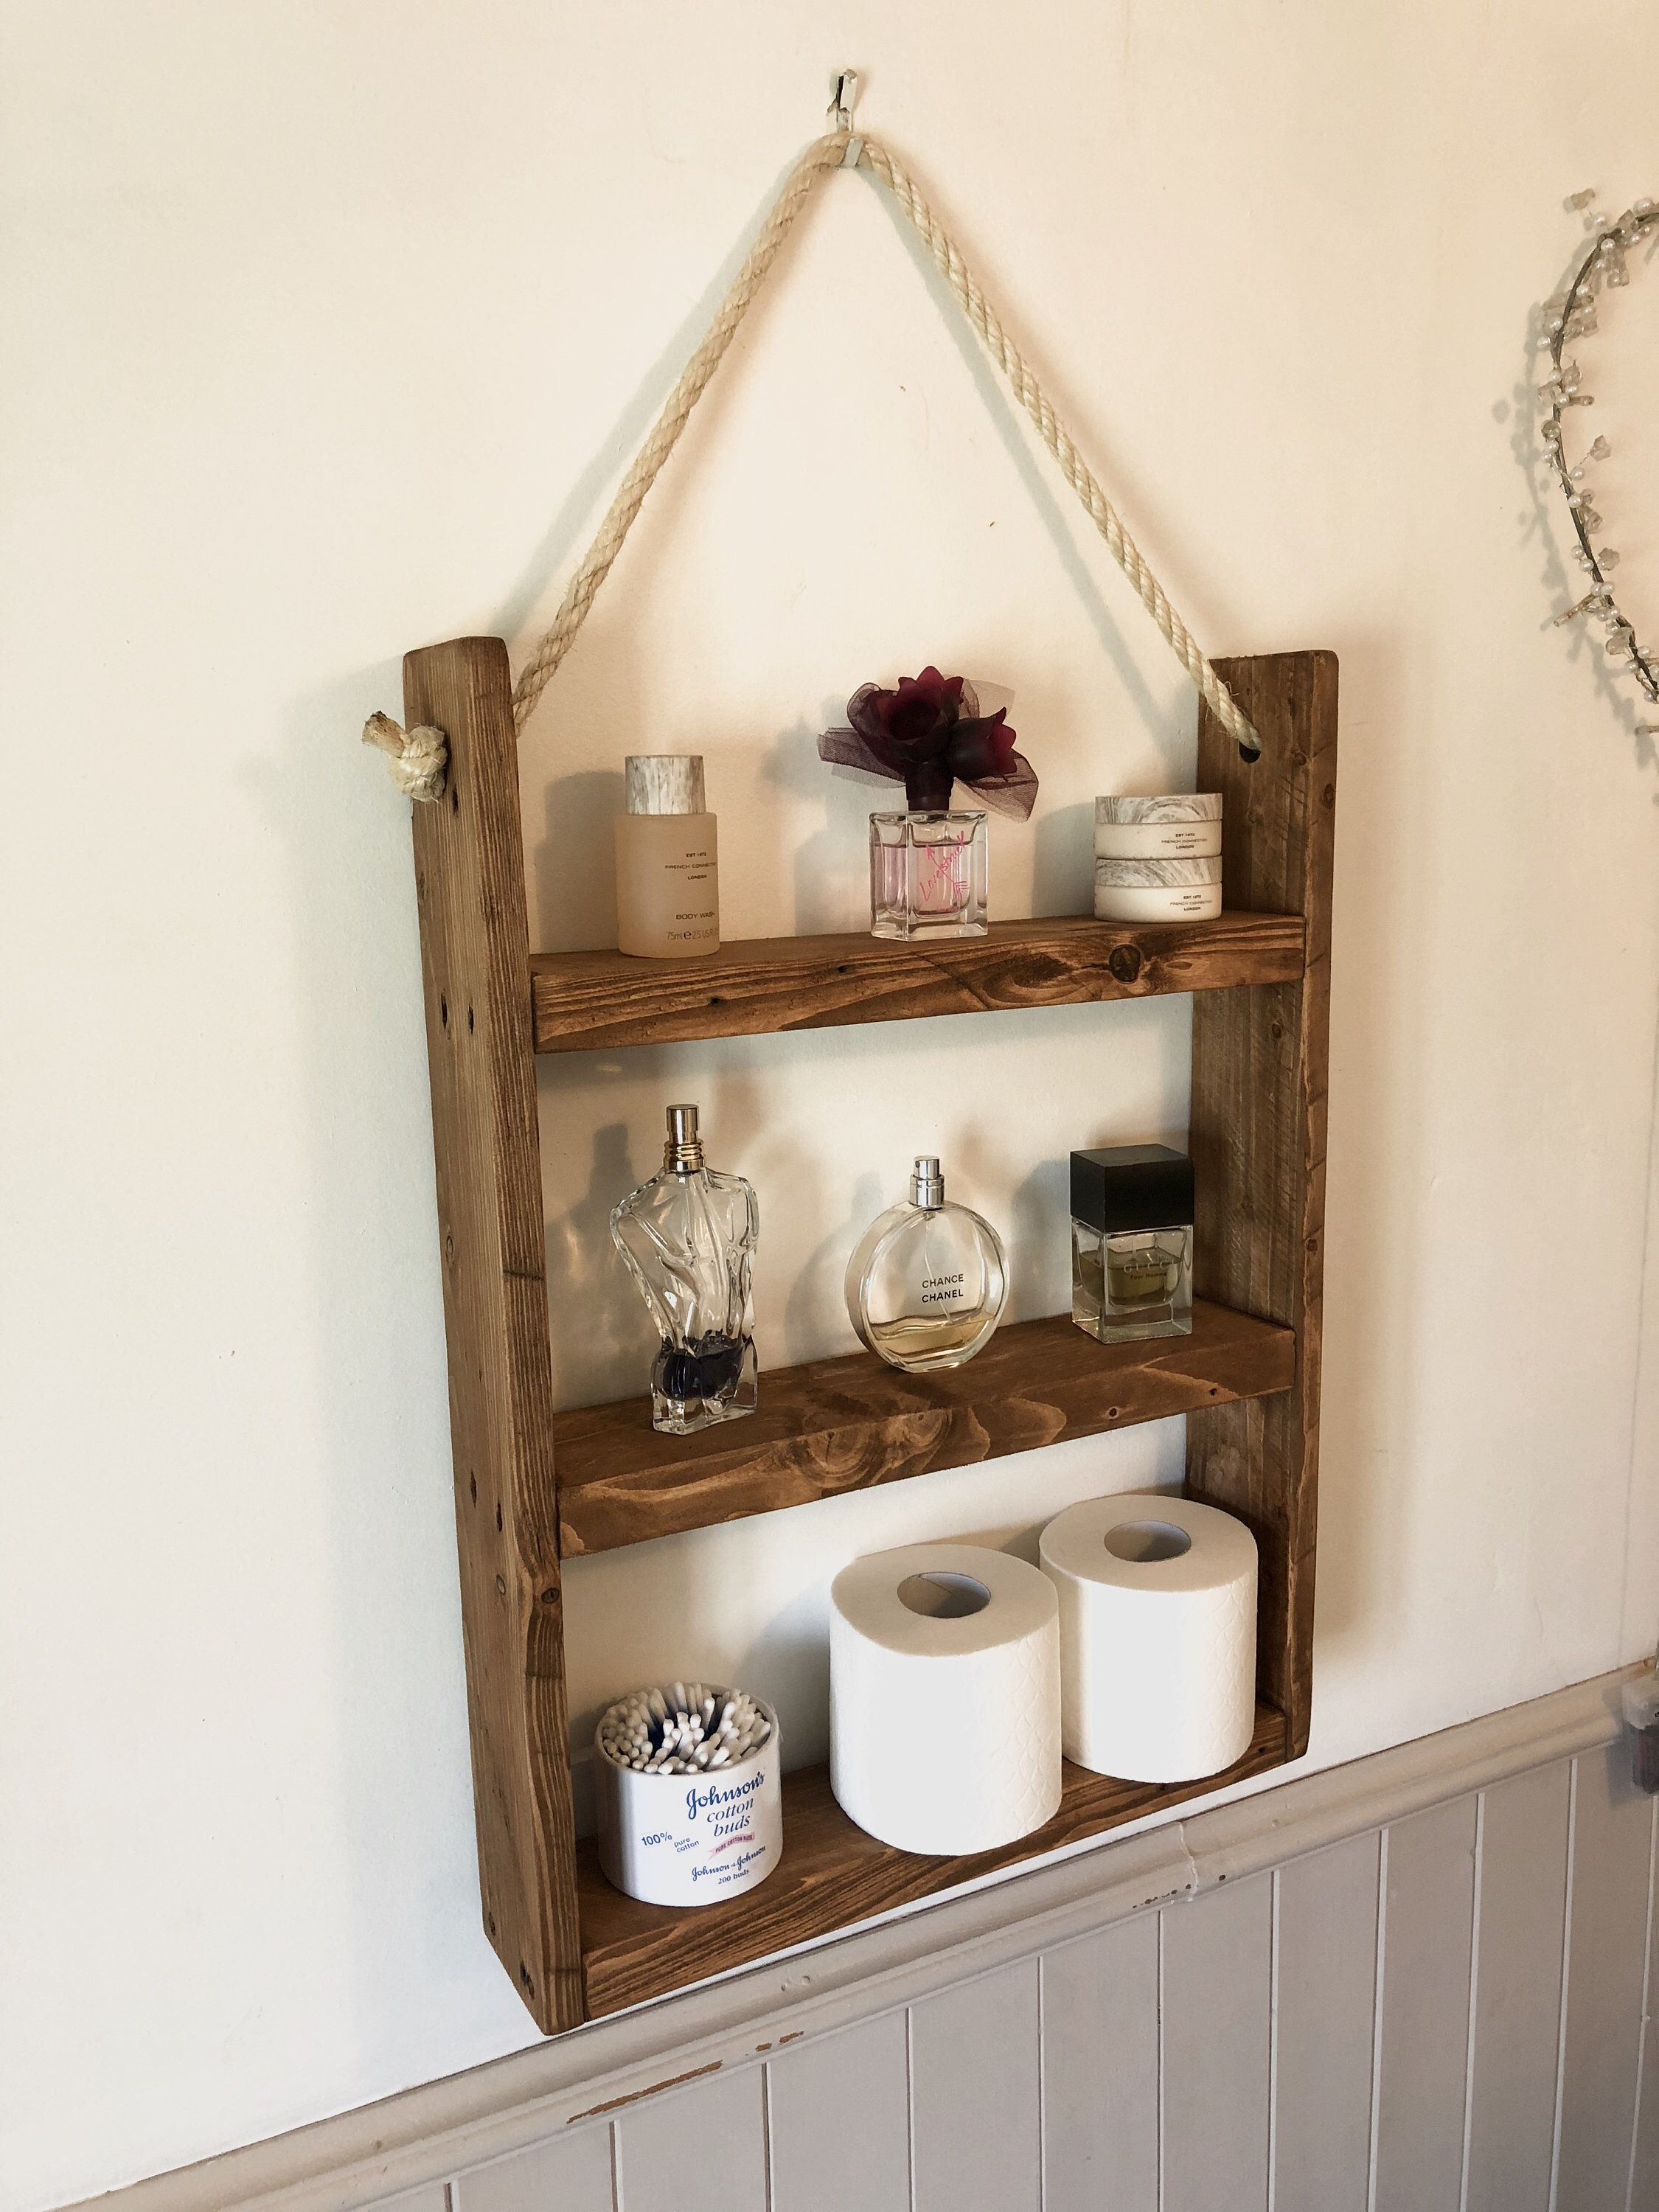 Rustic Hanging Ladder Shelf With Rope Wall Mounted Etsy Hanging Ladder Ladder Shelf Shelves